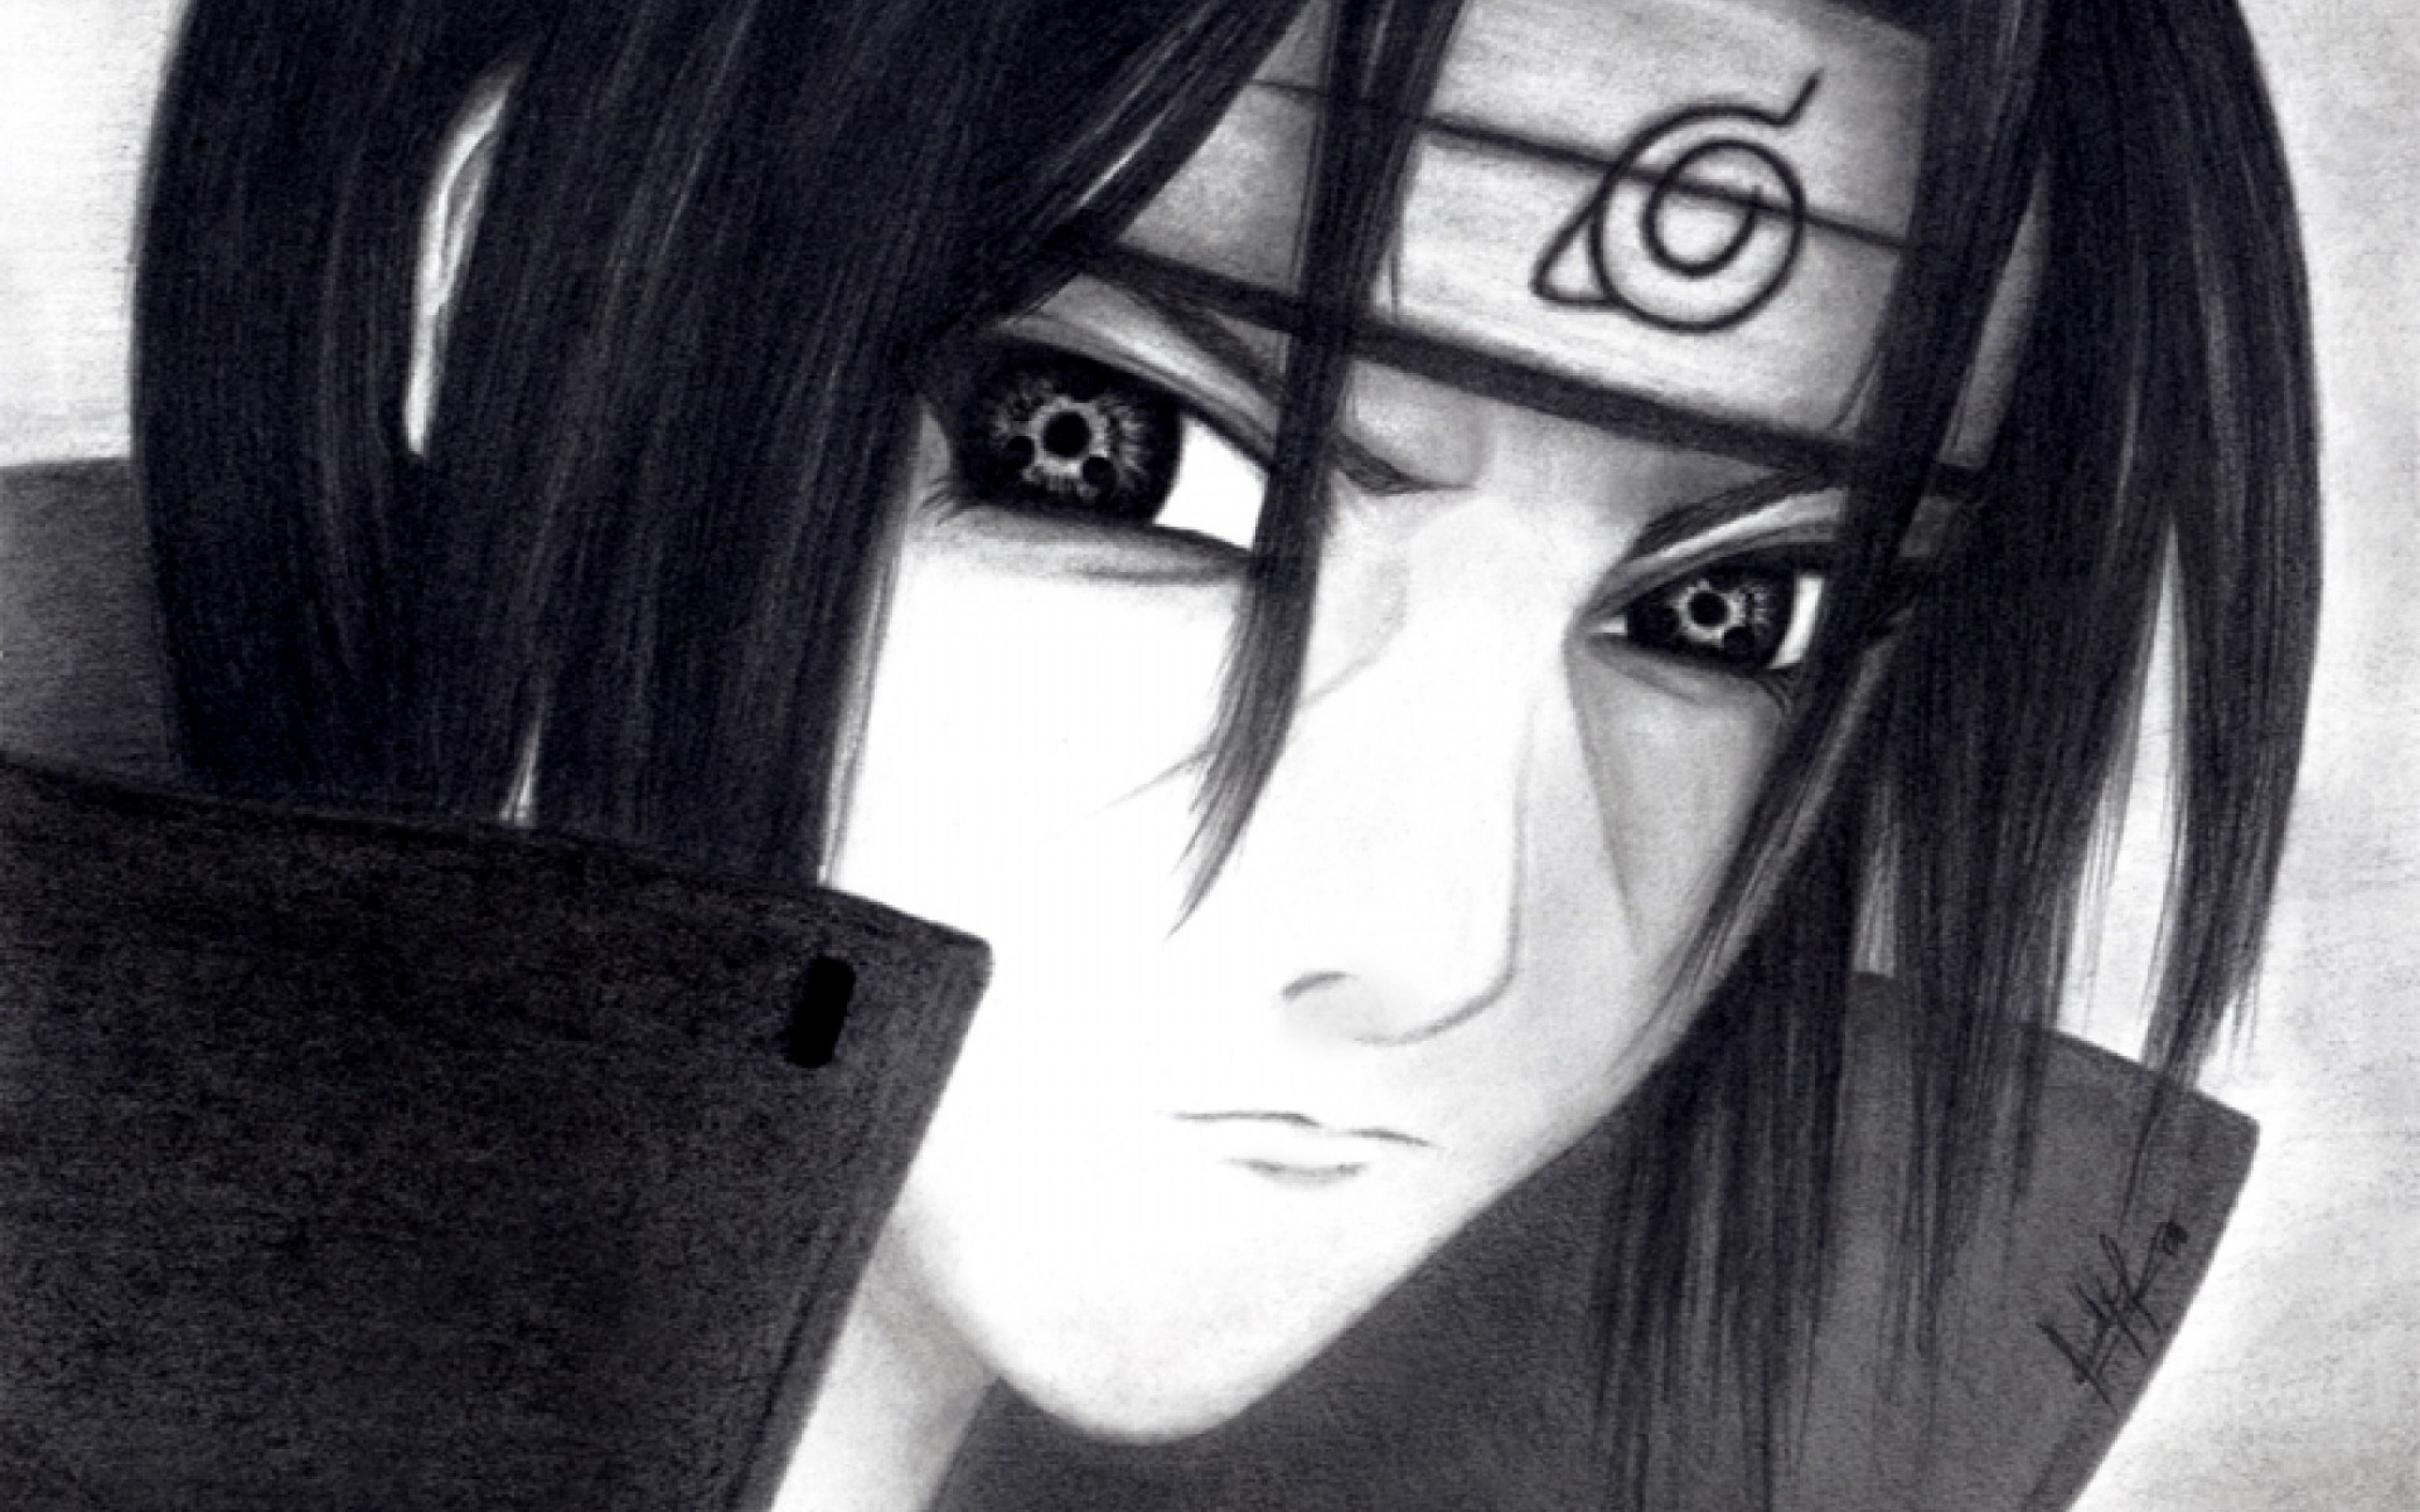 Itachi Uchiha Drawing Wallpaper Anime Hd Wallpaper